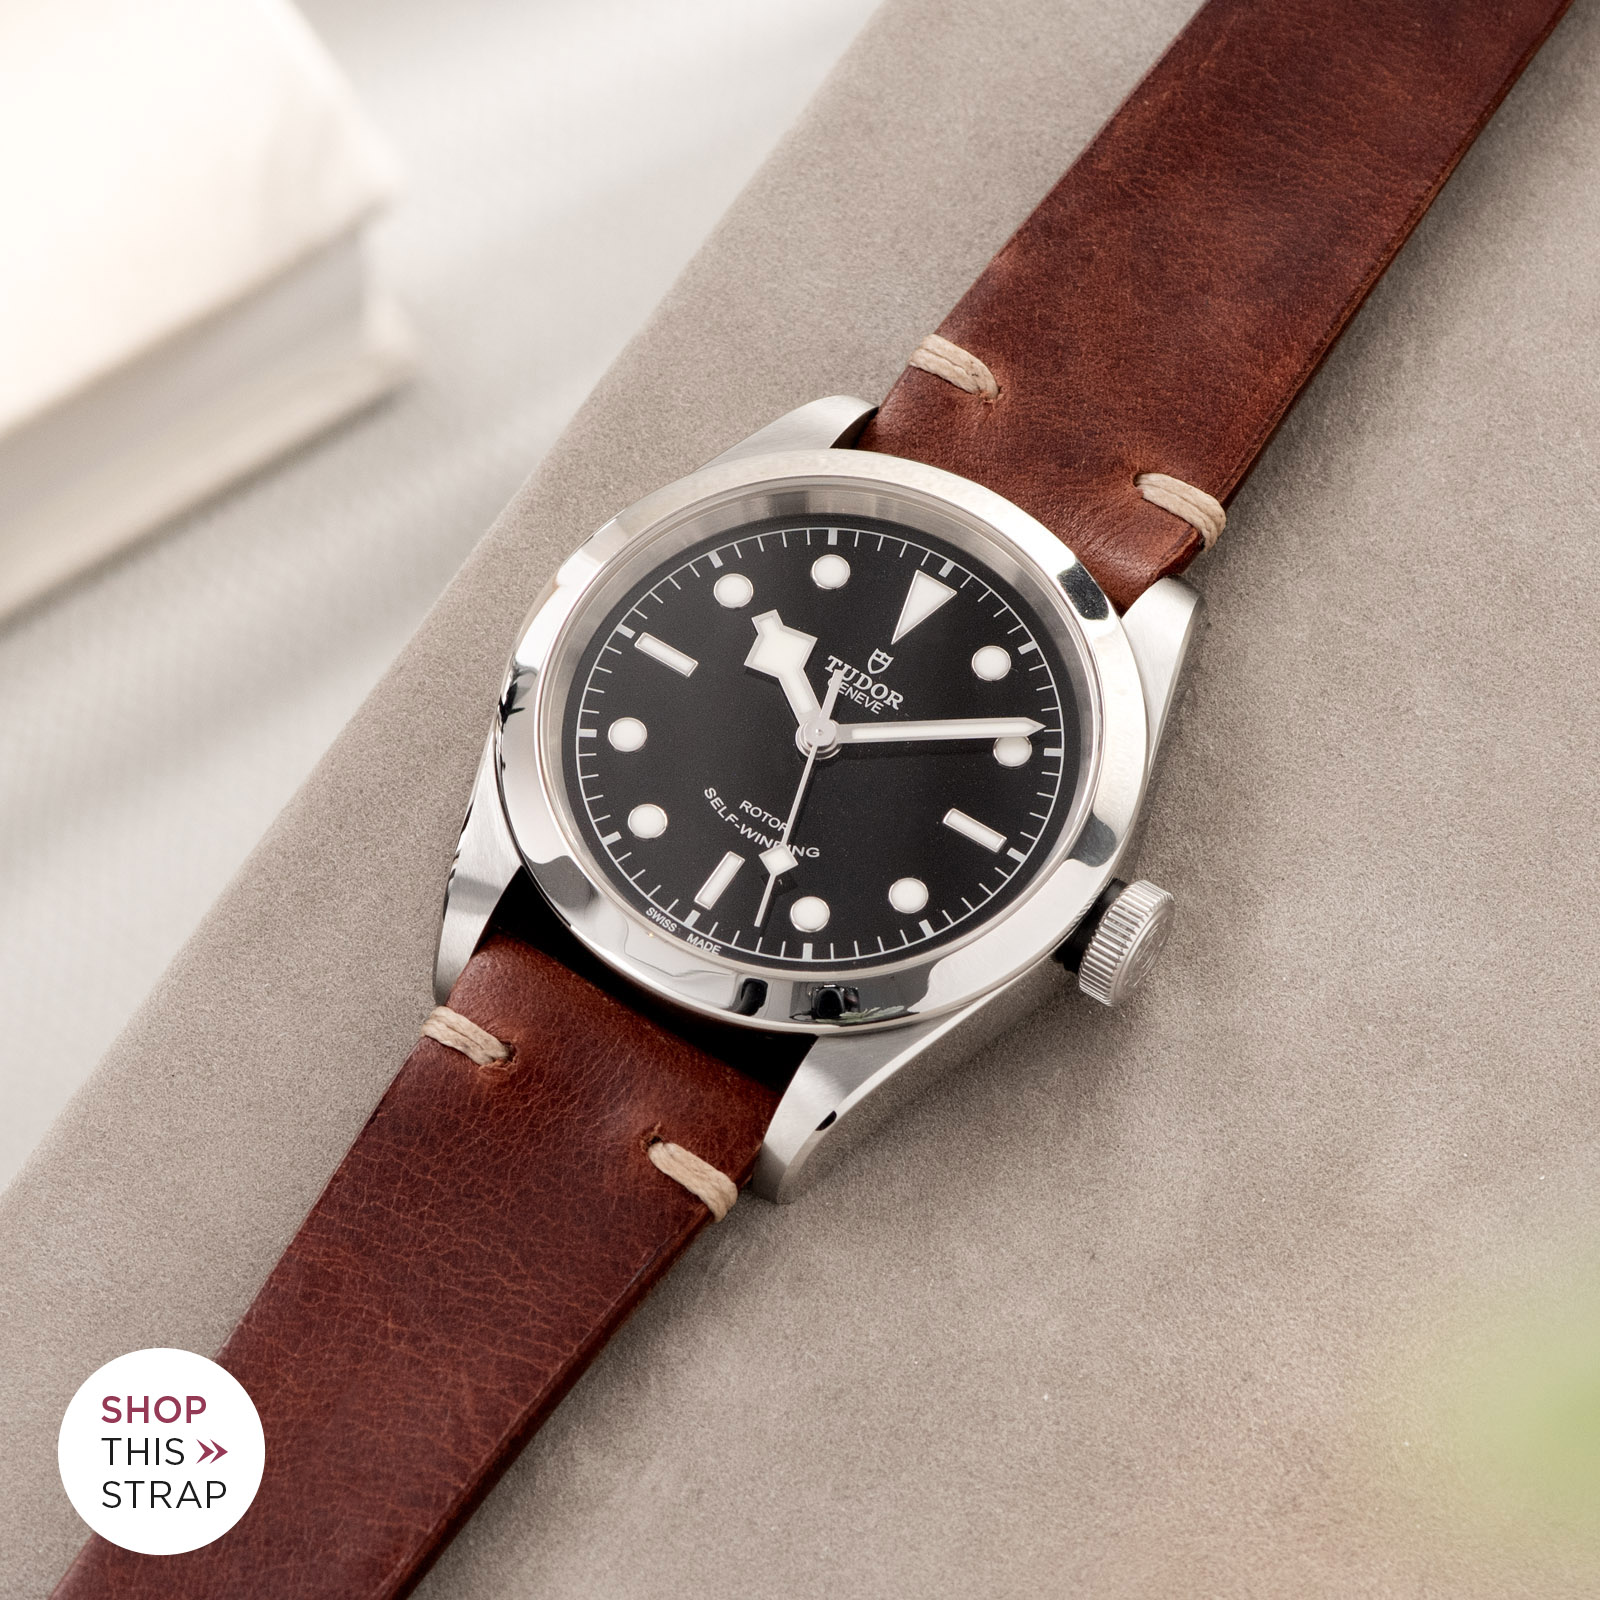 Bulang and Sons_Strap Guide_Tudor Heritage BlackBay 411_Siena Brown Leather Watch Strap